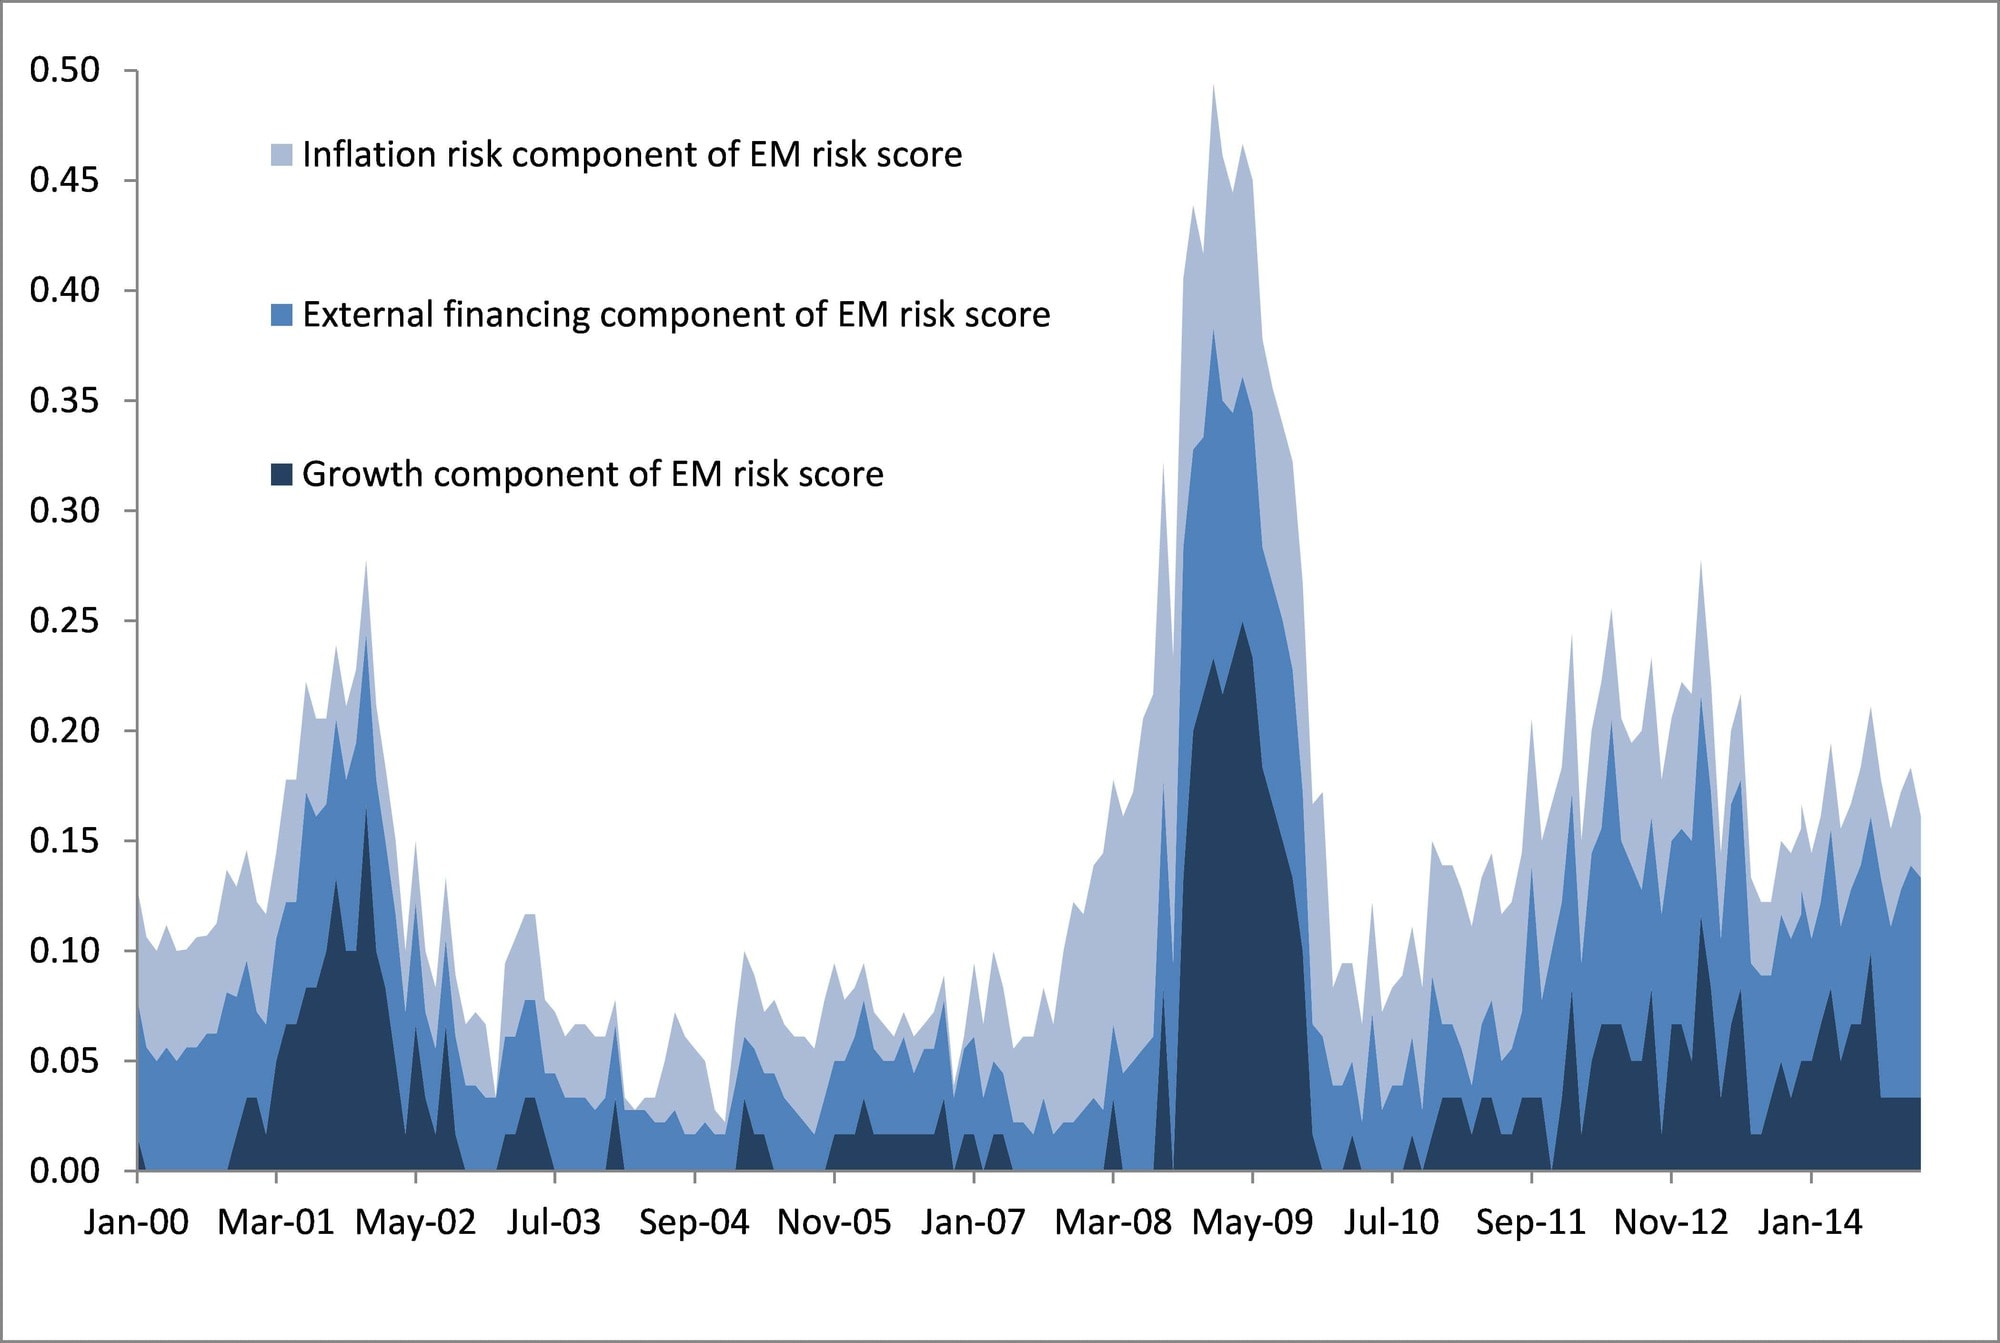 The external financing component of the EM risk score has increased